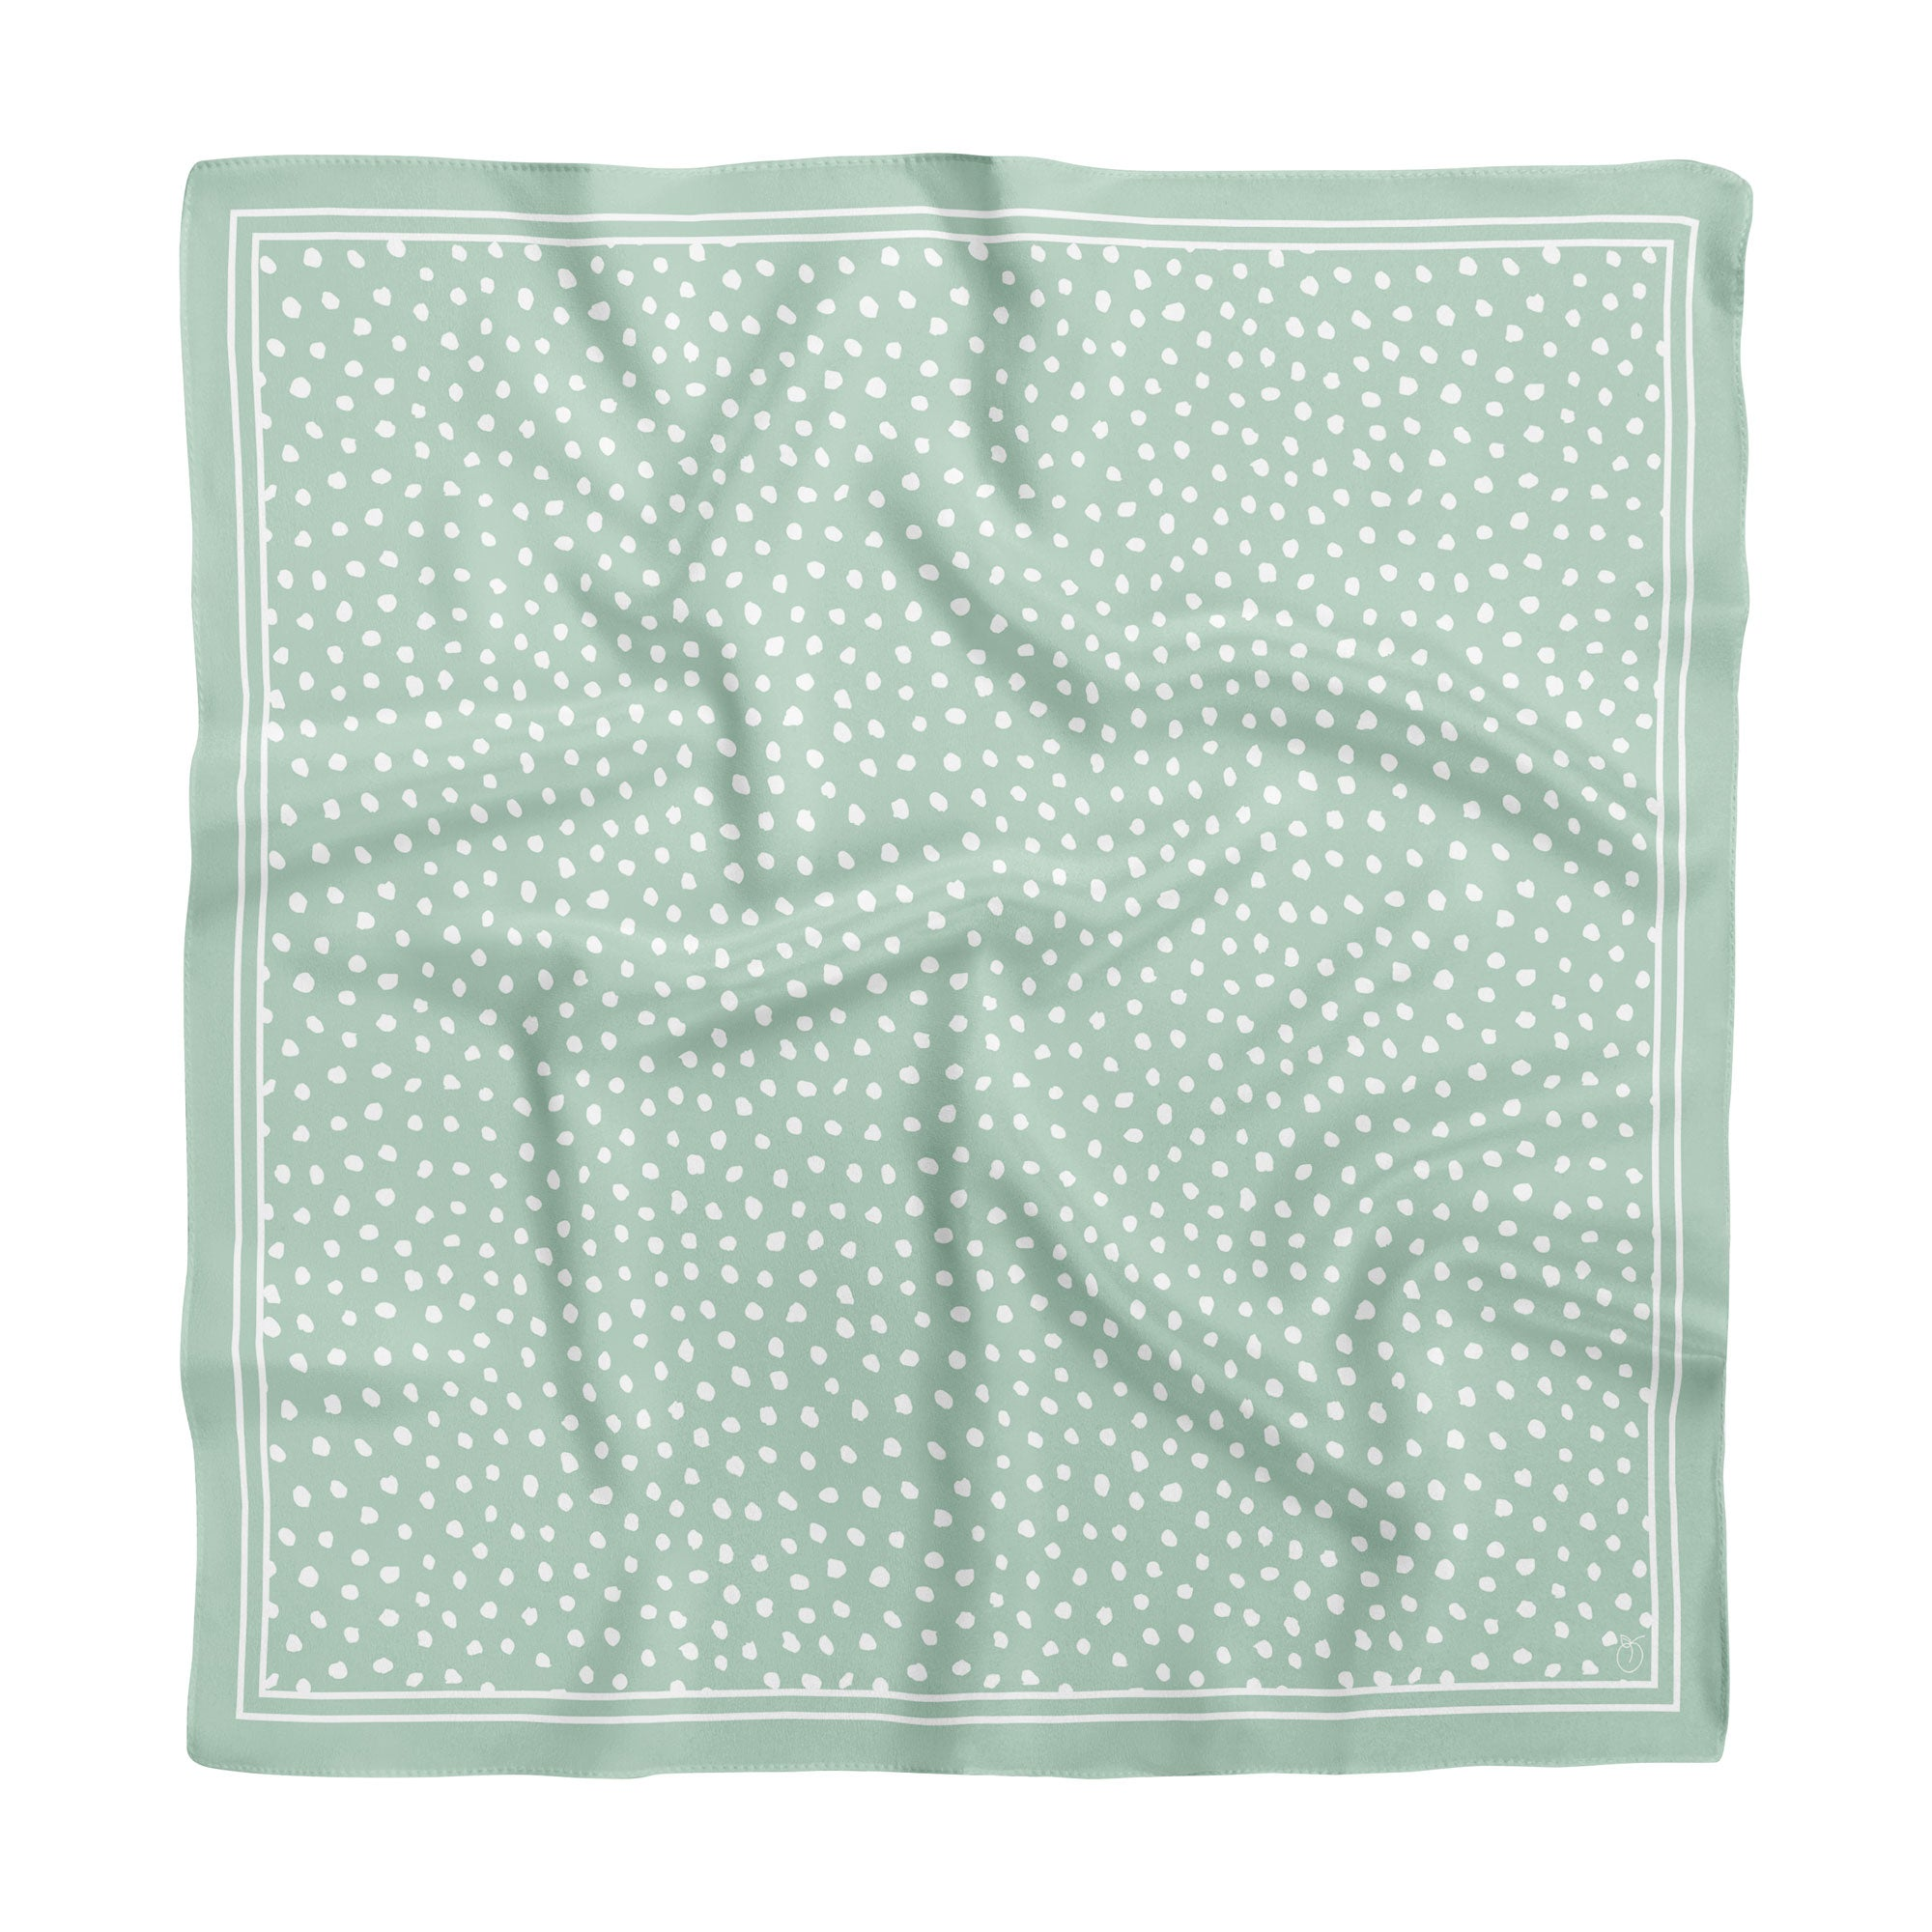 Sage Green Spot On Classic Square Silk Scarf